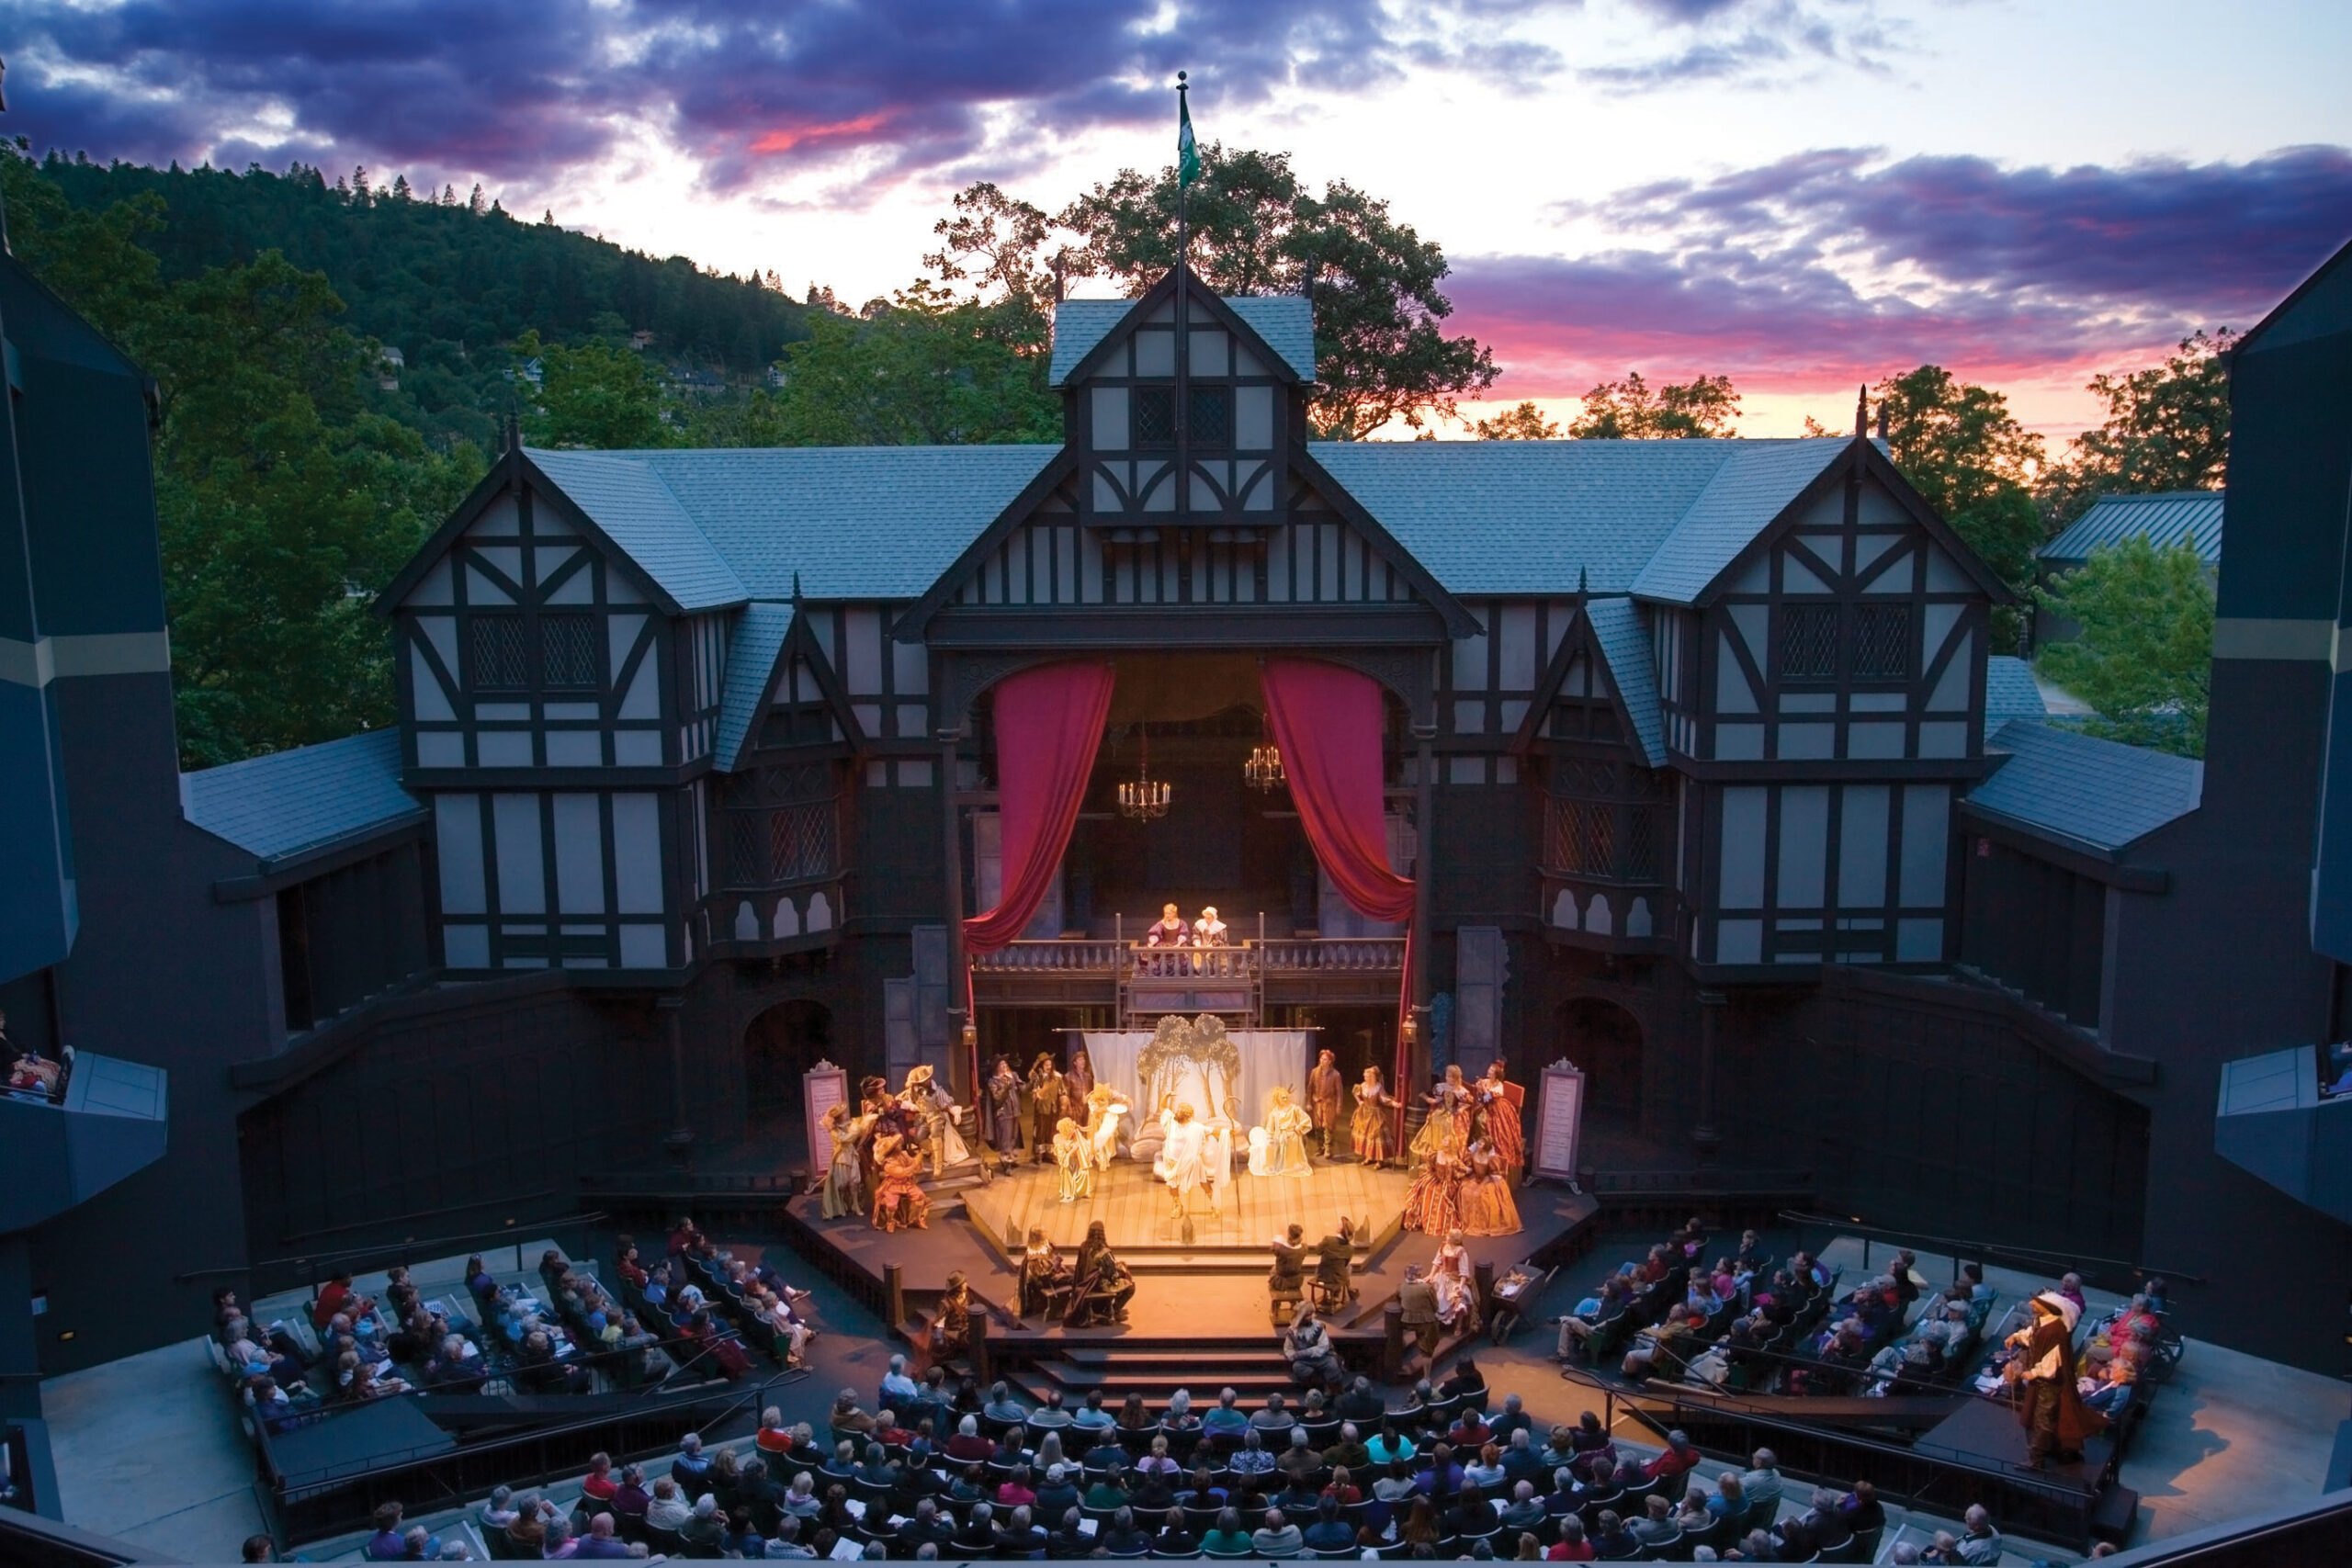 The Allen Elizabethan Theatre will have a new Meyer Sound system installed for its season opening in June.